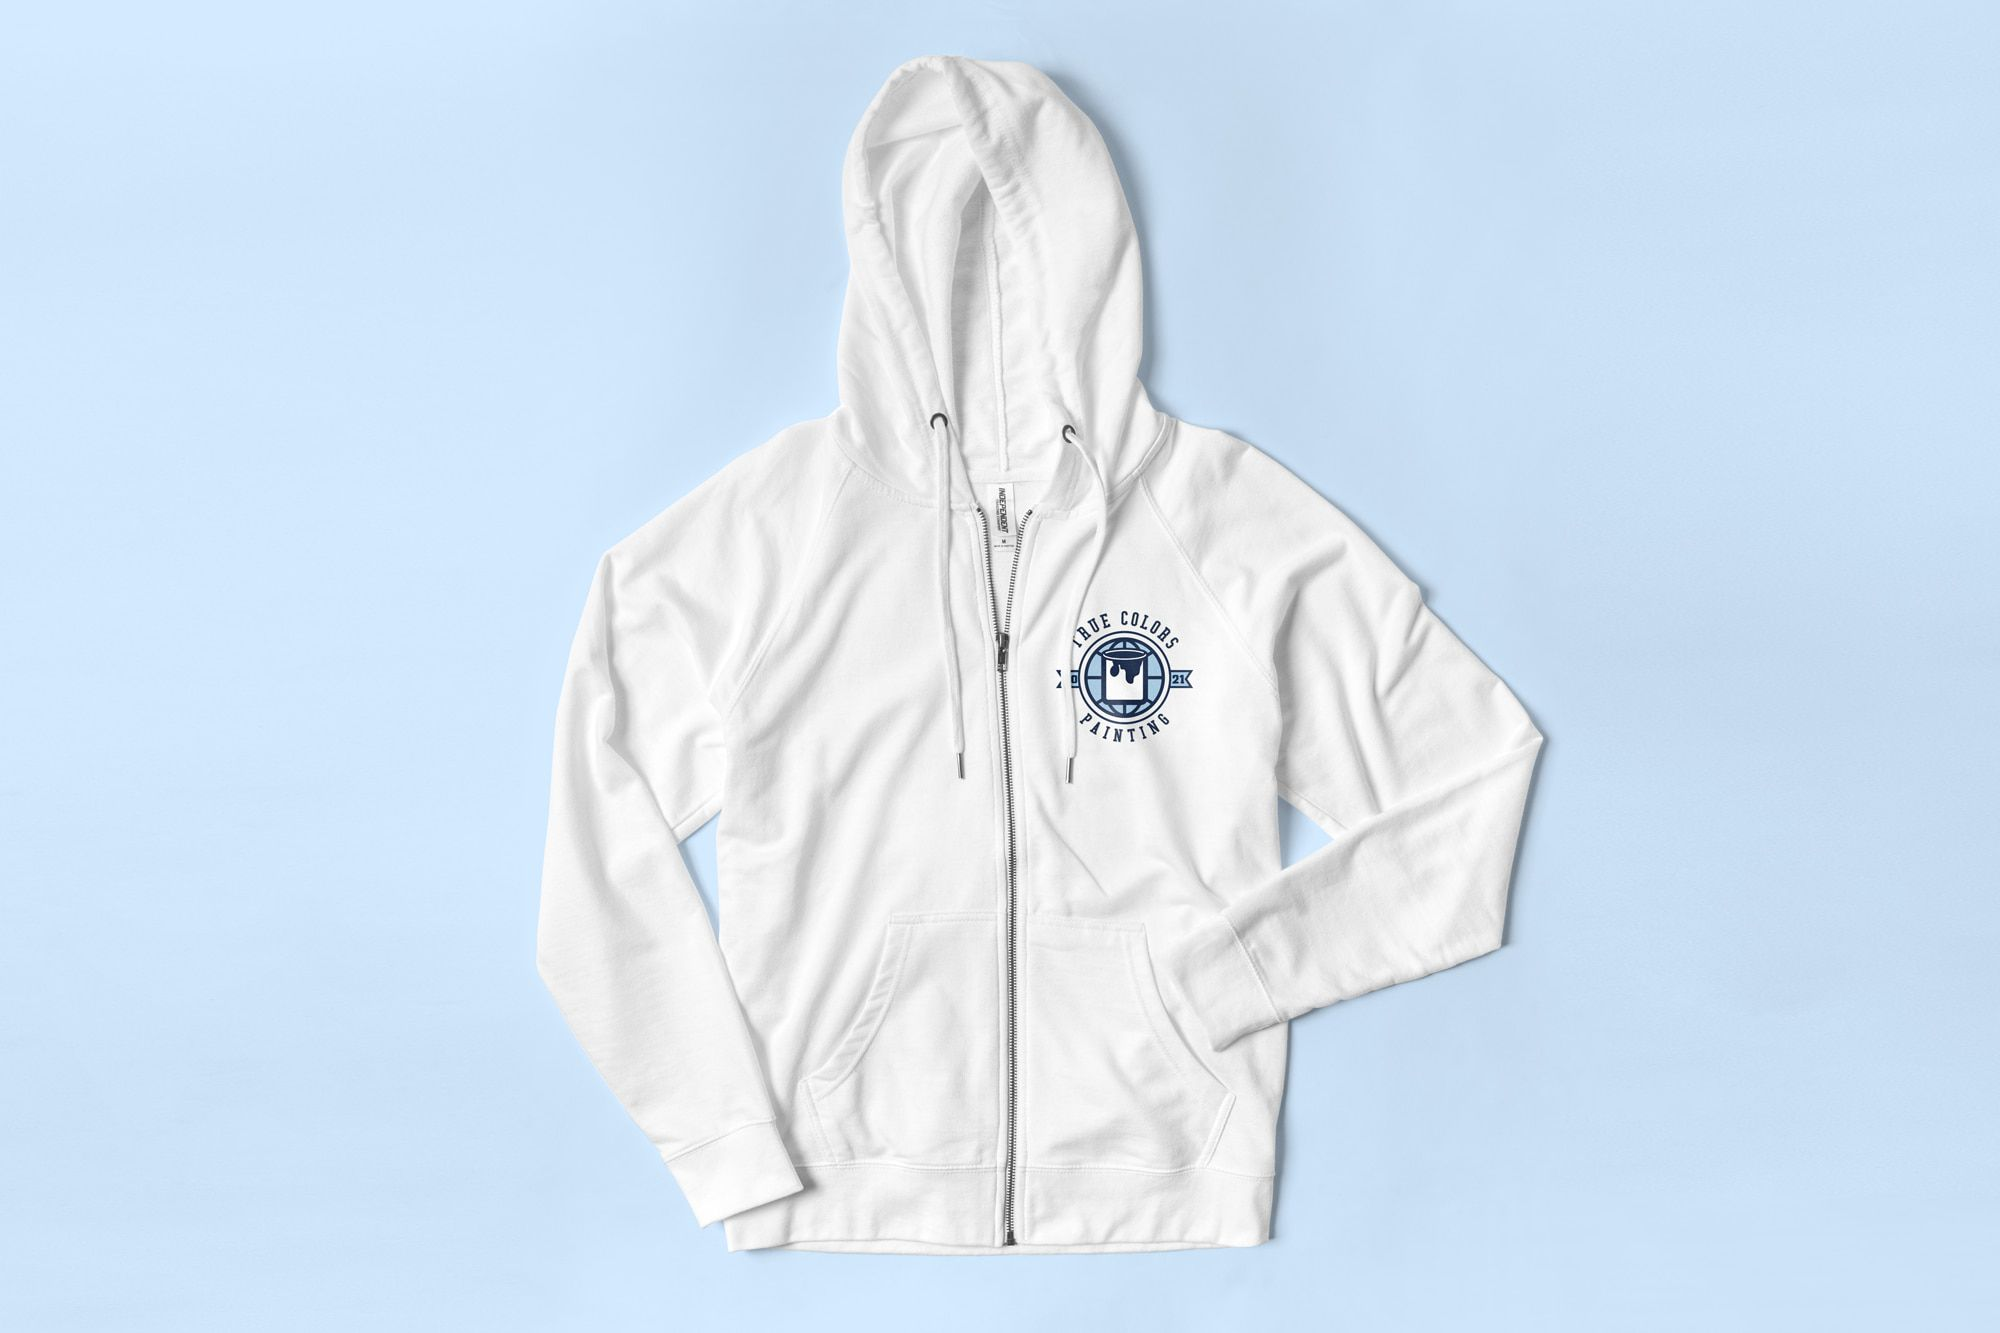 Flatlay of the Independent Trading lightweight Zip Up Hoodie showing a custom design for a painting company on the left chest.